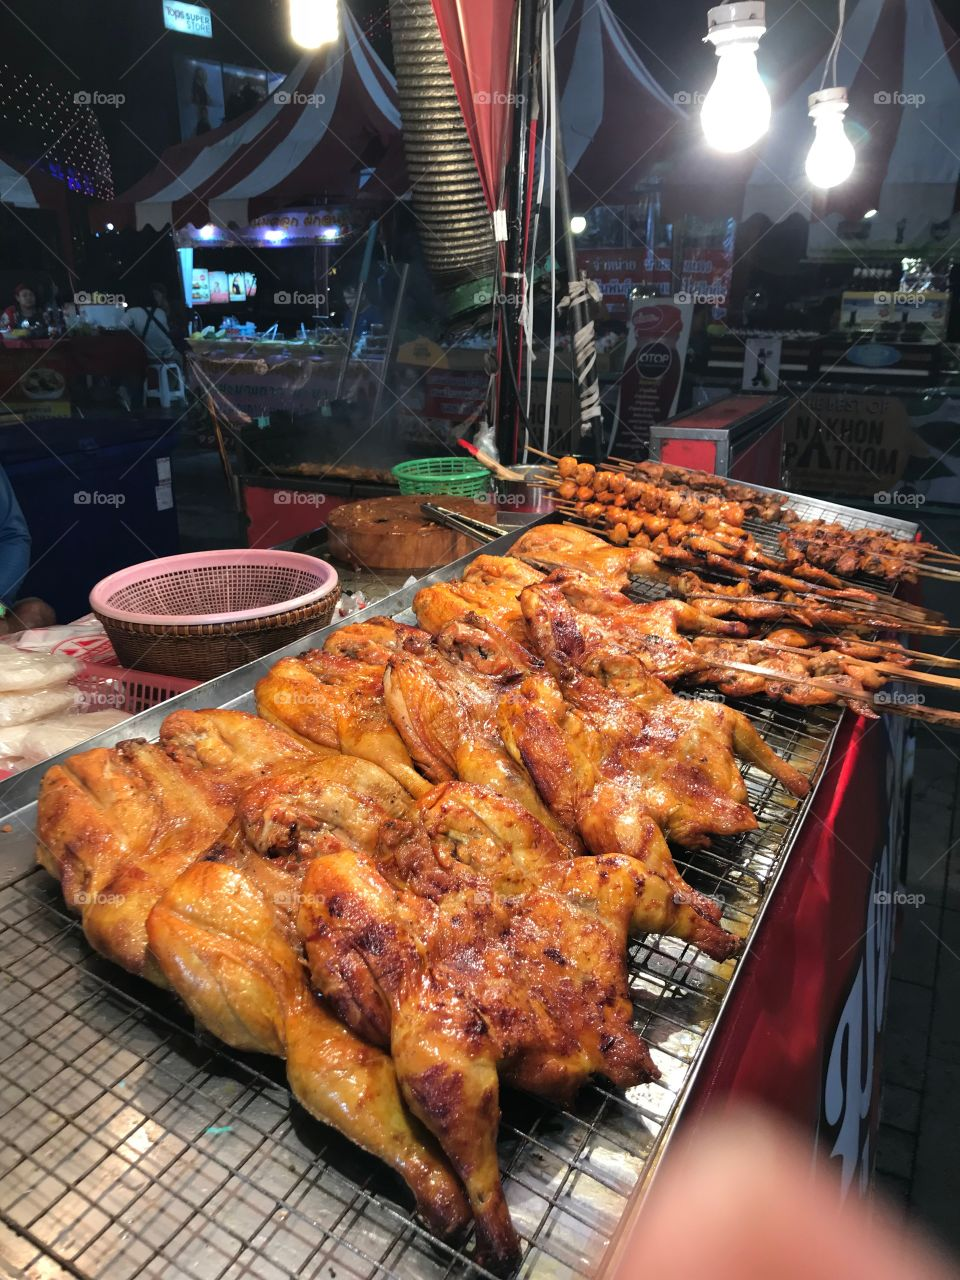 Grilled chickens in the market